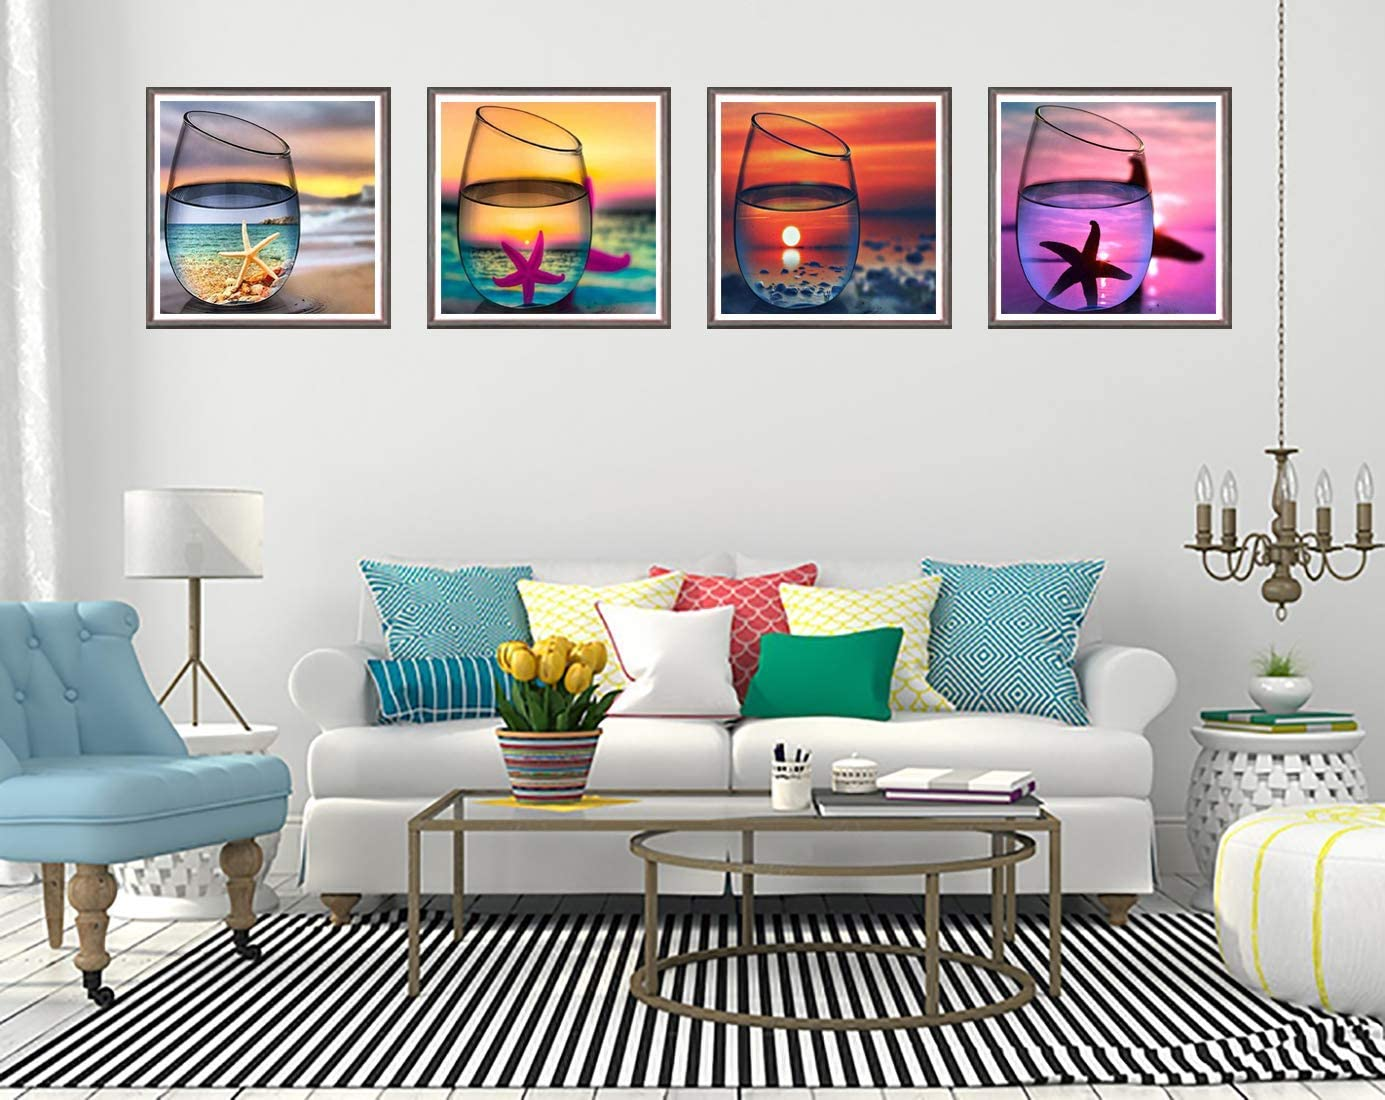 12 x 12 inch 5D DIY Diamond Painting by Number Kits Cup Scenery Full Drill for Adults,4 Pack Beach Landscape Paint with Diamonds Art Starfish Sunrise /& Sunset Craft Cross Stitch Decor